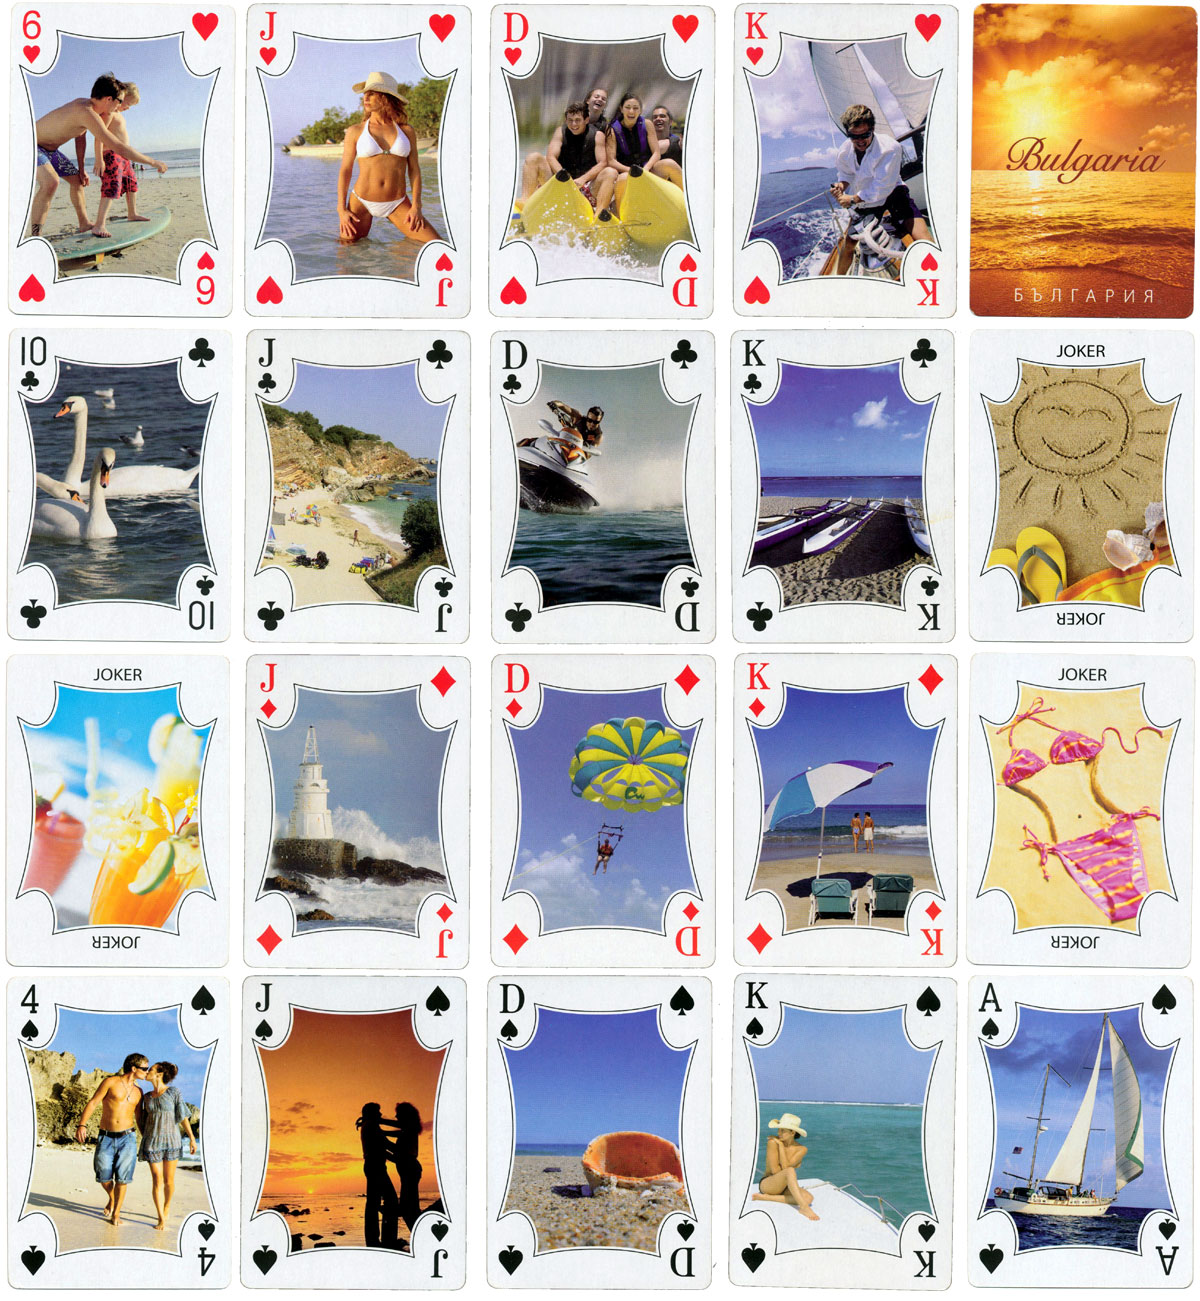 Bulgarian souvenir playing cards c.2000-2010